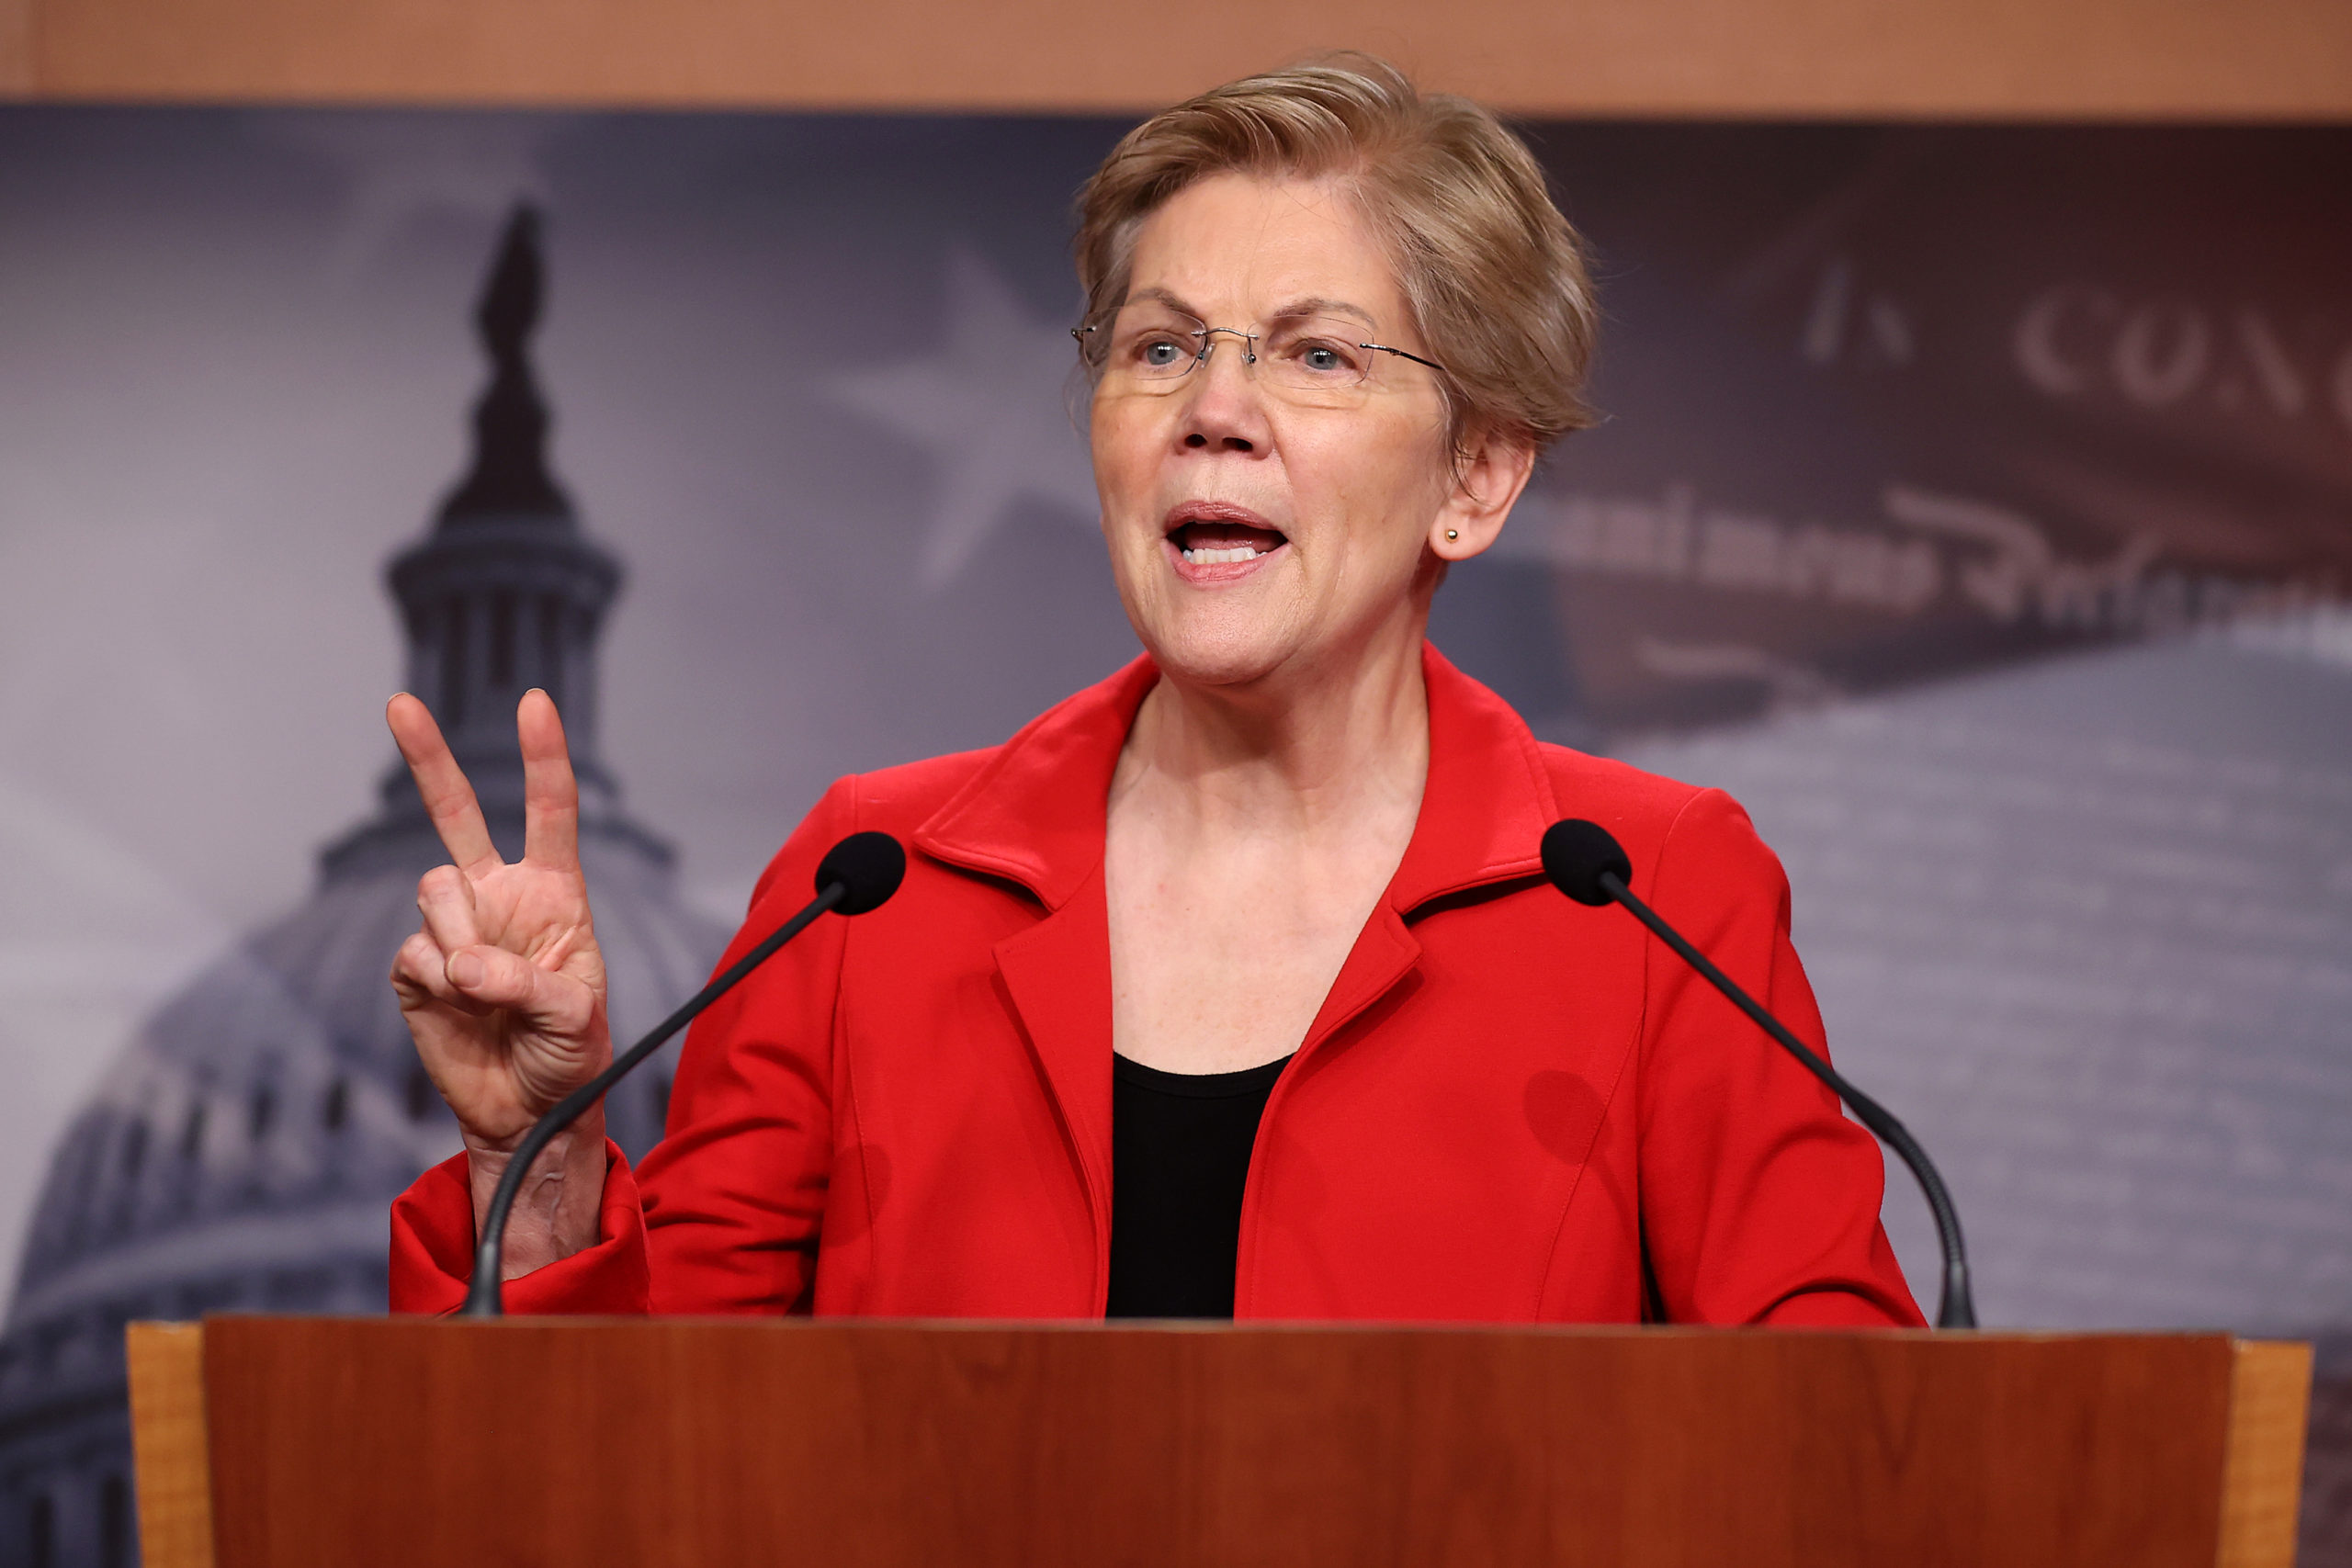 Sen. Elizabeth Warren holds a news conference to announce legislation that would tax the net worth of America's wealthiest individuals on March 1. (Chip Somodevilla/Getty Images)